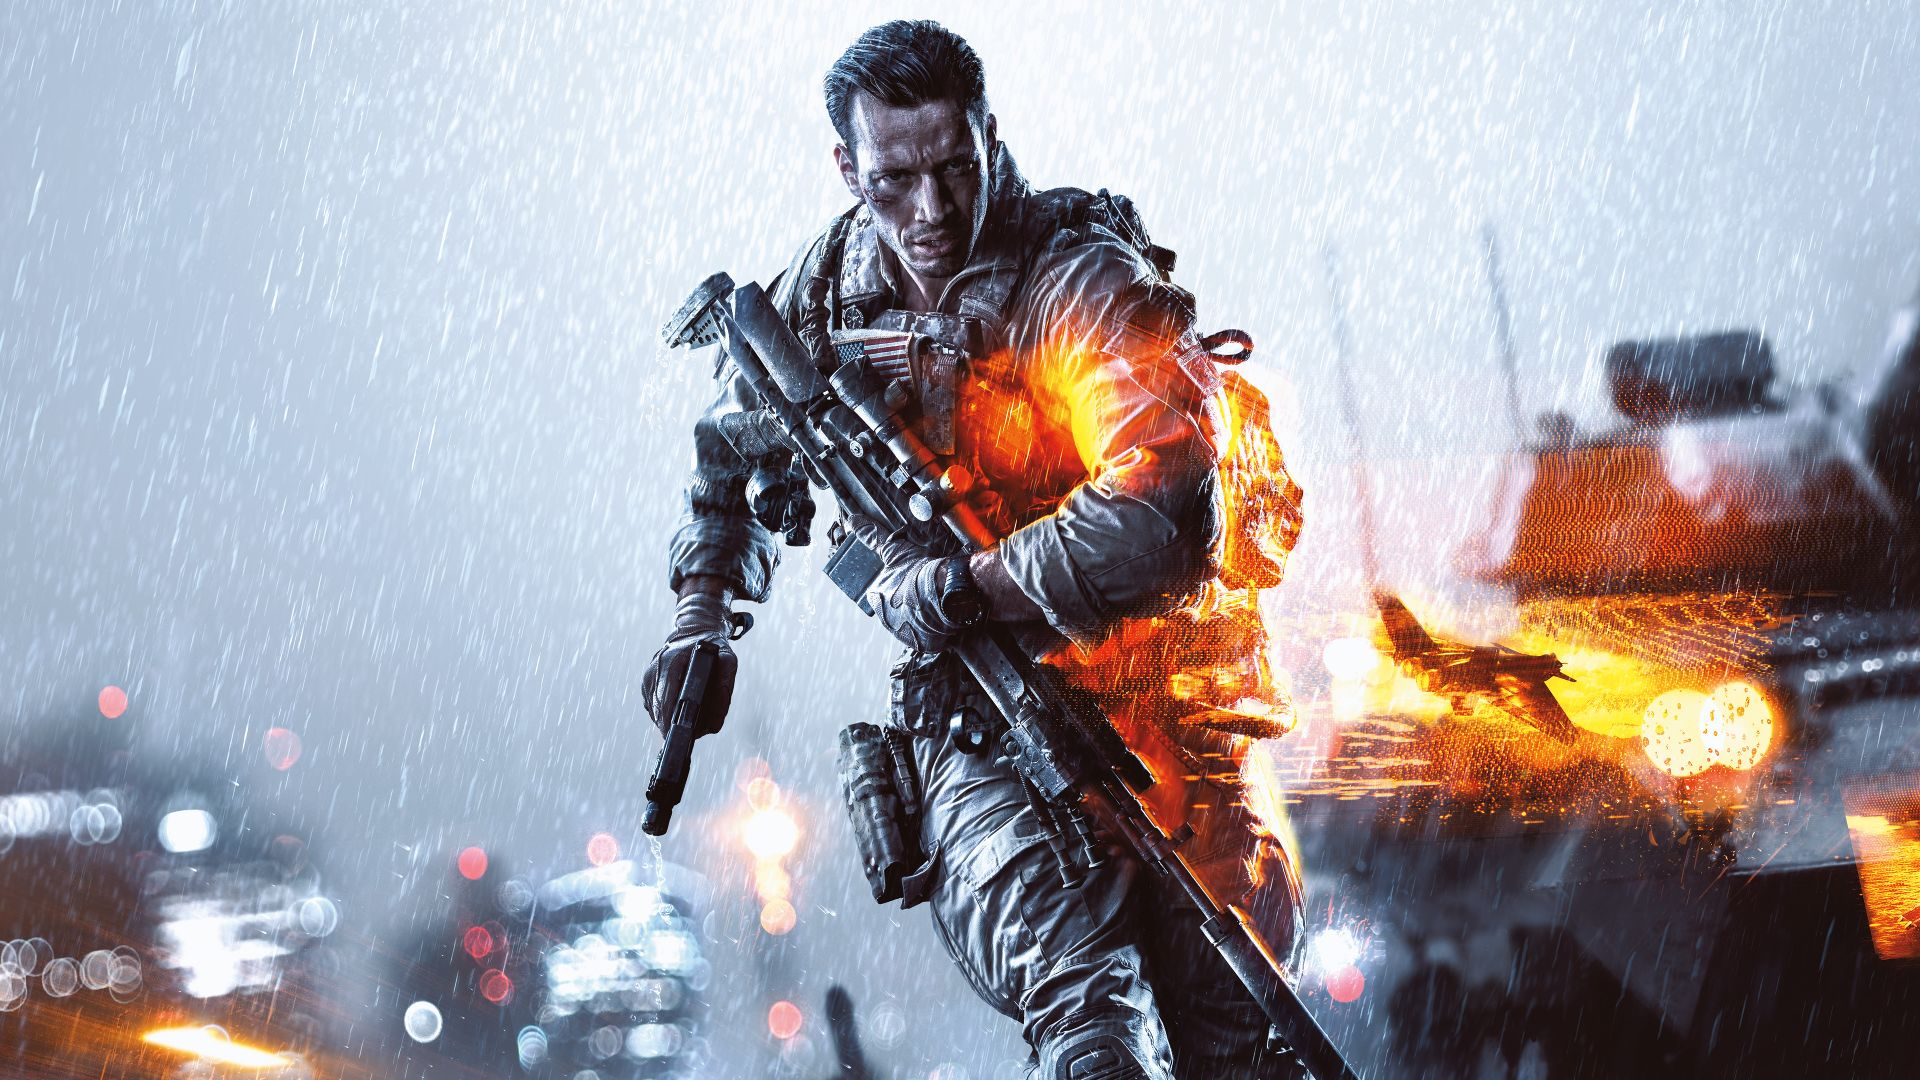 Battlefield 4 PC is currently free for Amazon Prime members